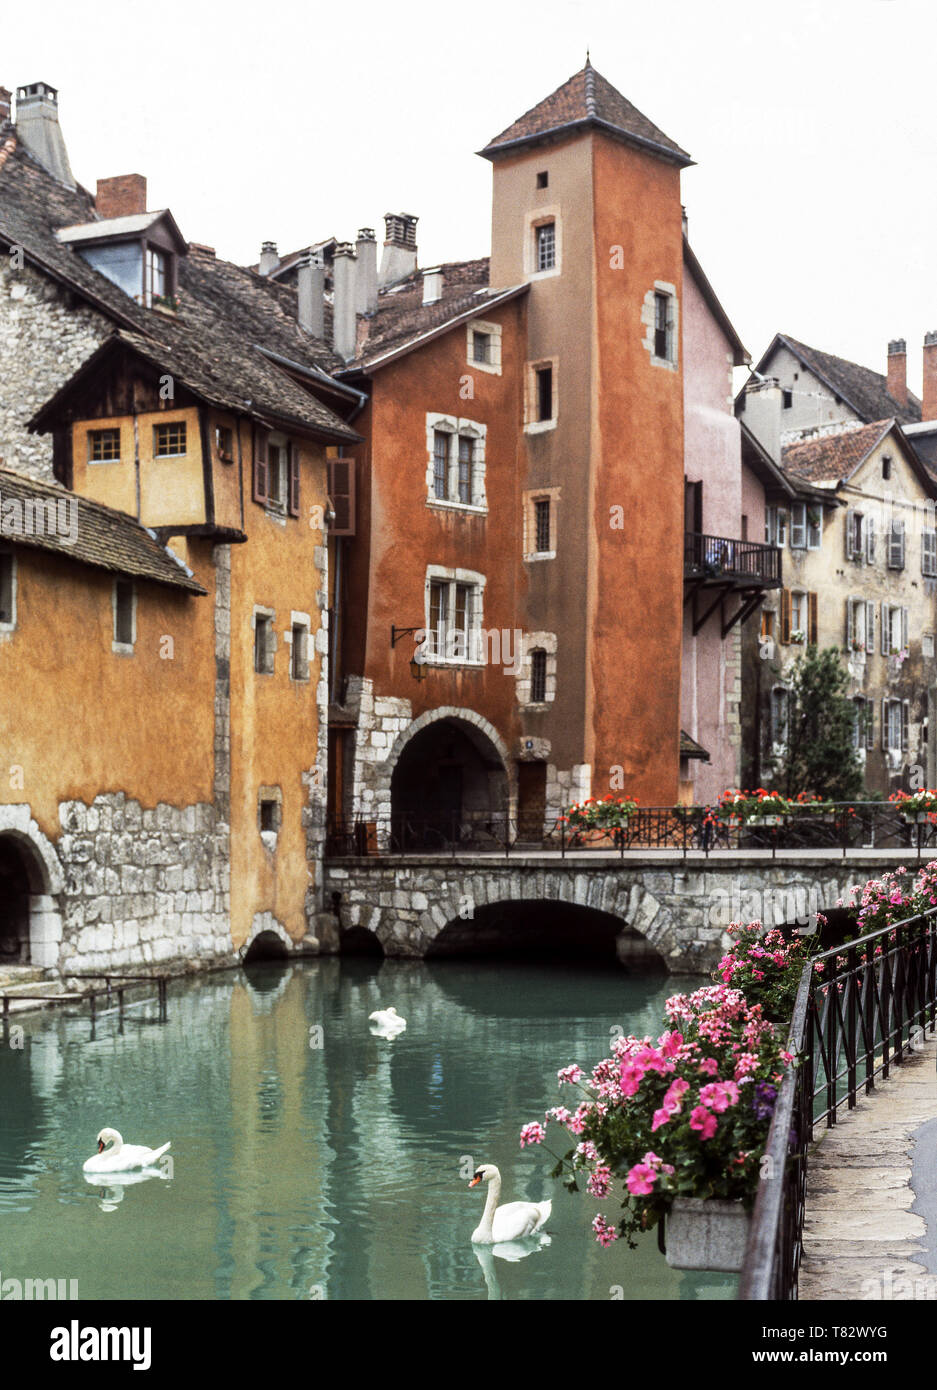 The medieval town of Annecy (Dept. Haute-Savoie).The old town with the River Thiou - Stock Image